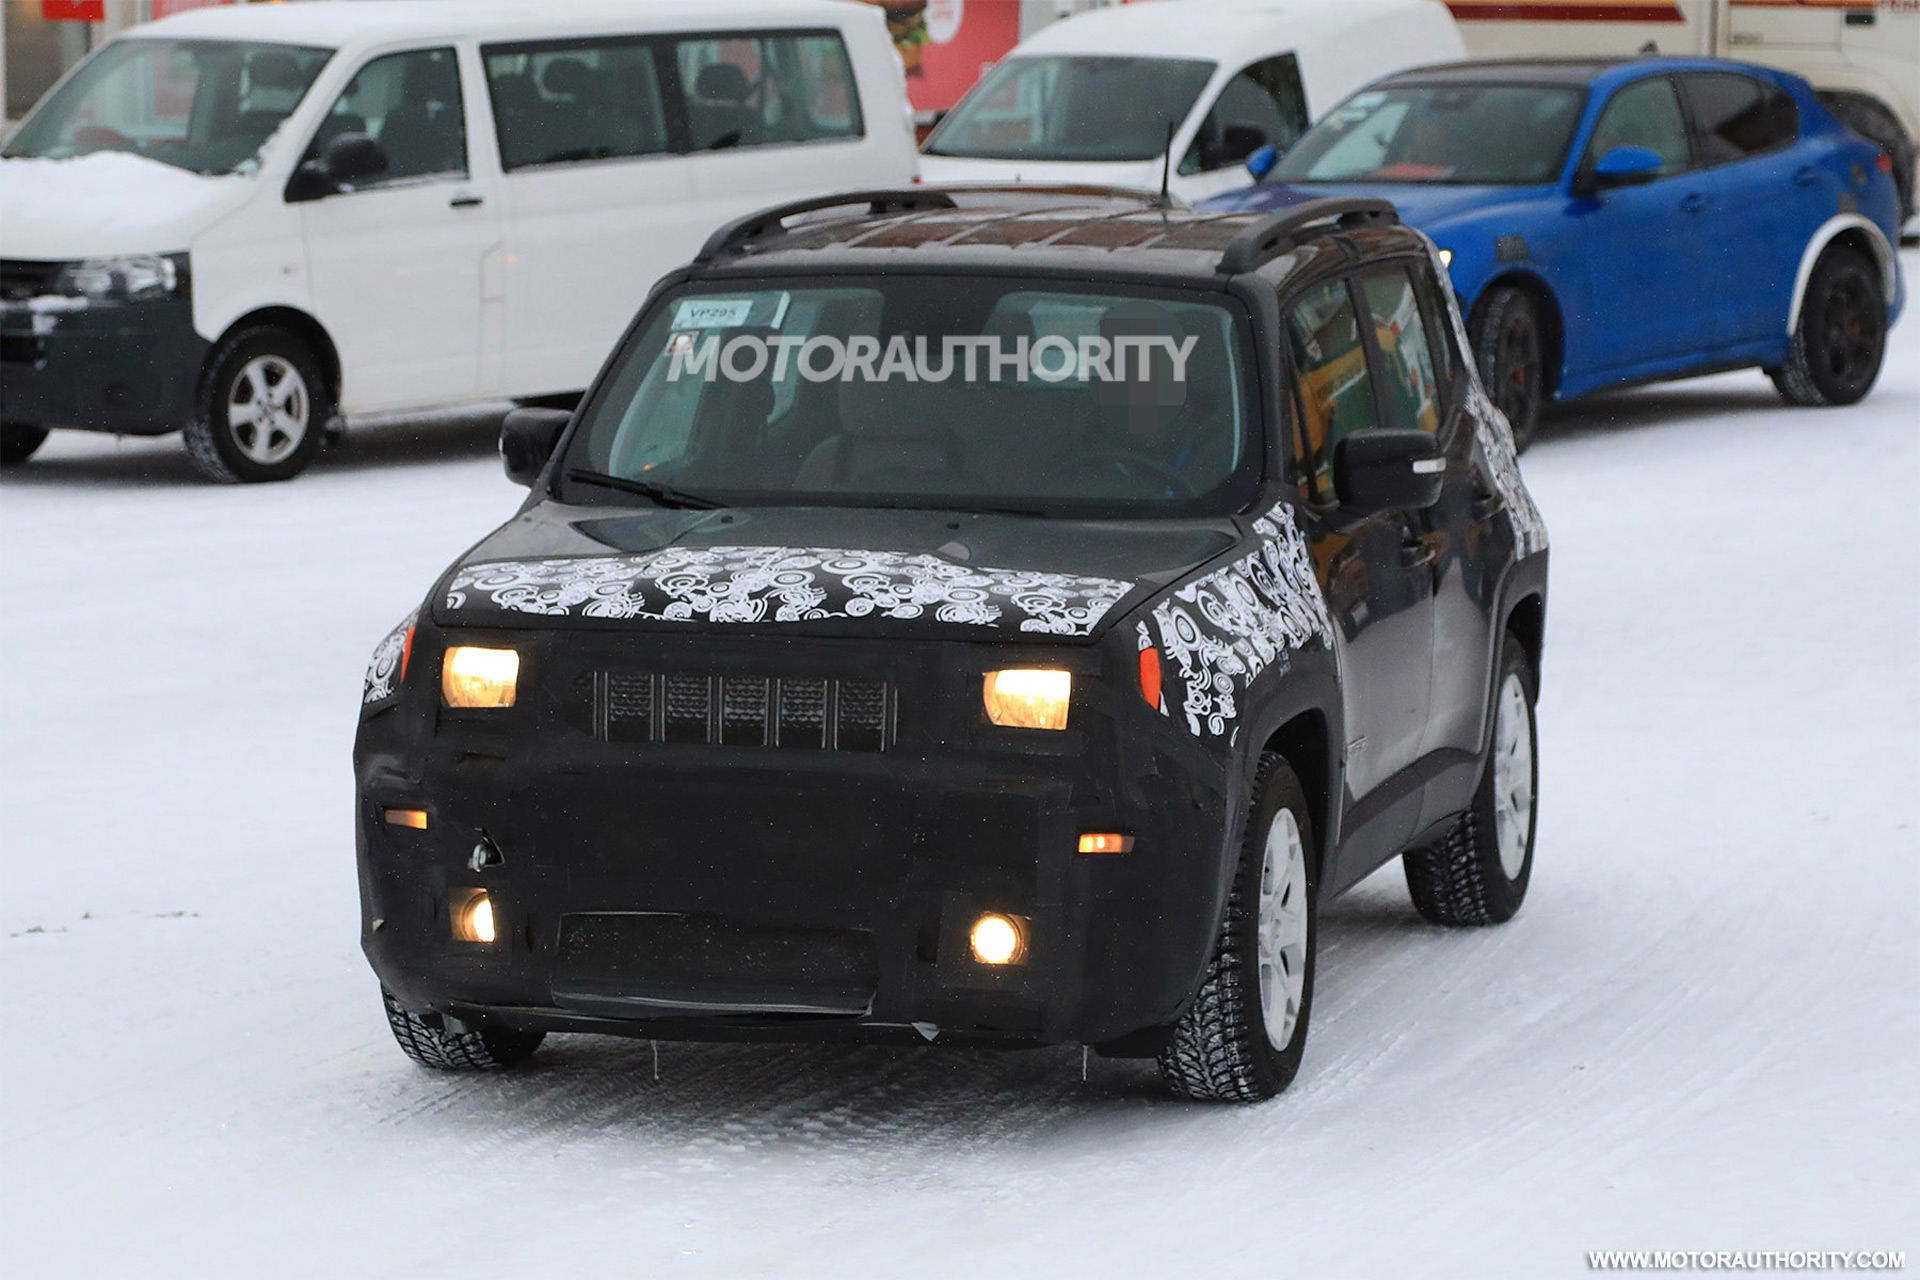 2019 Renegade spy shots